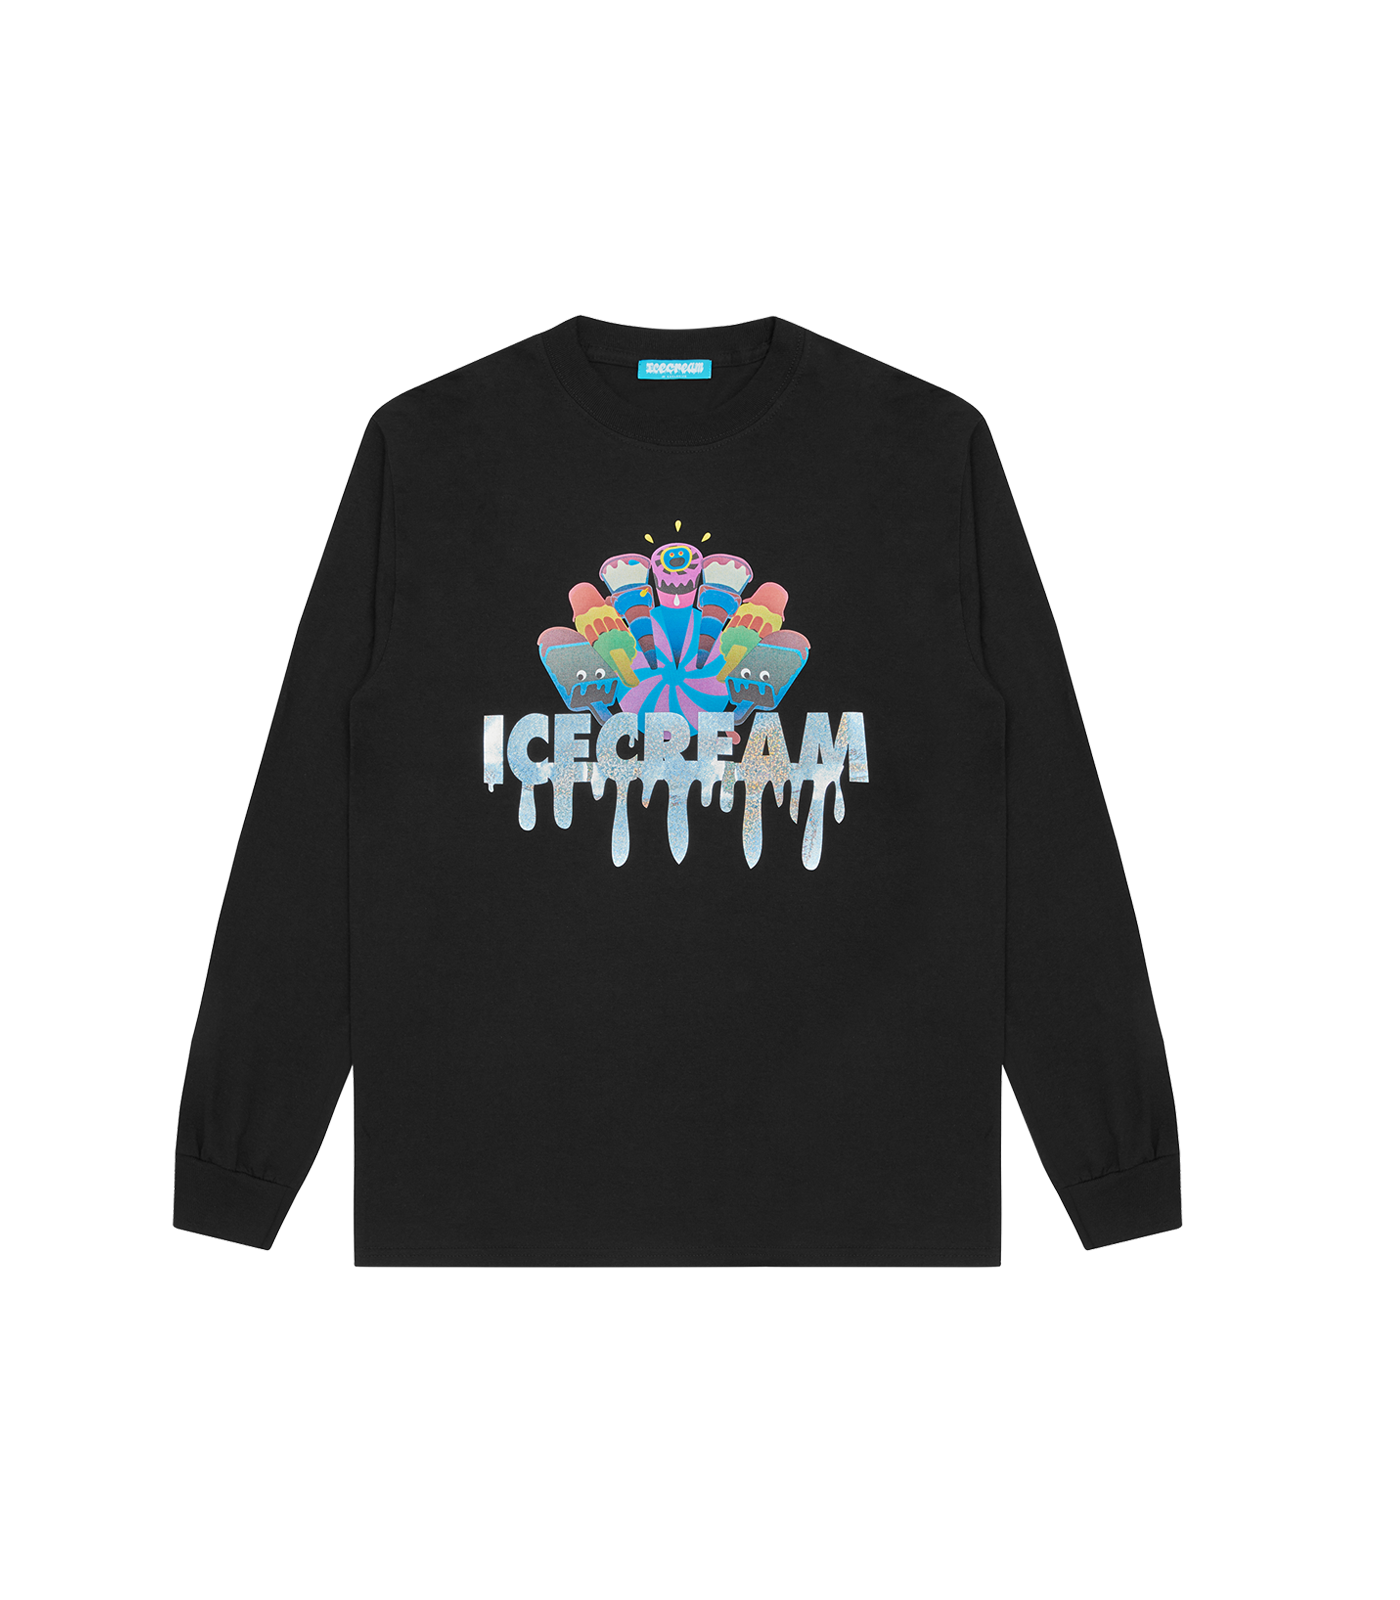 ICECREAM L/S T-SHIRT - BLACK